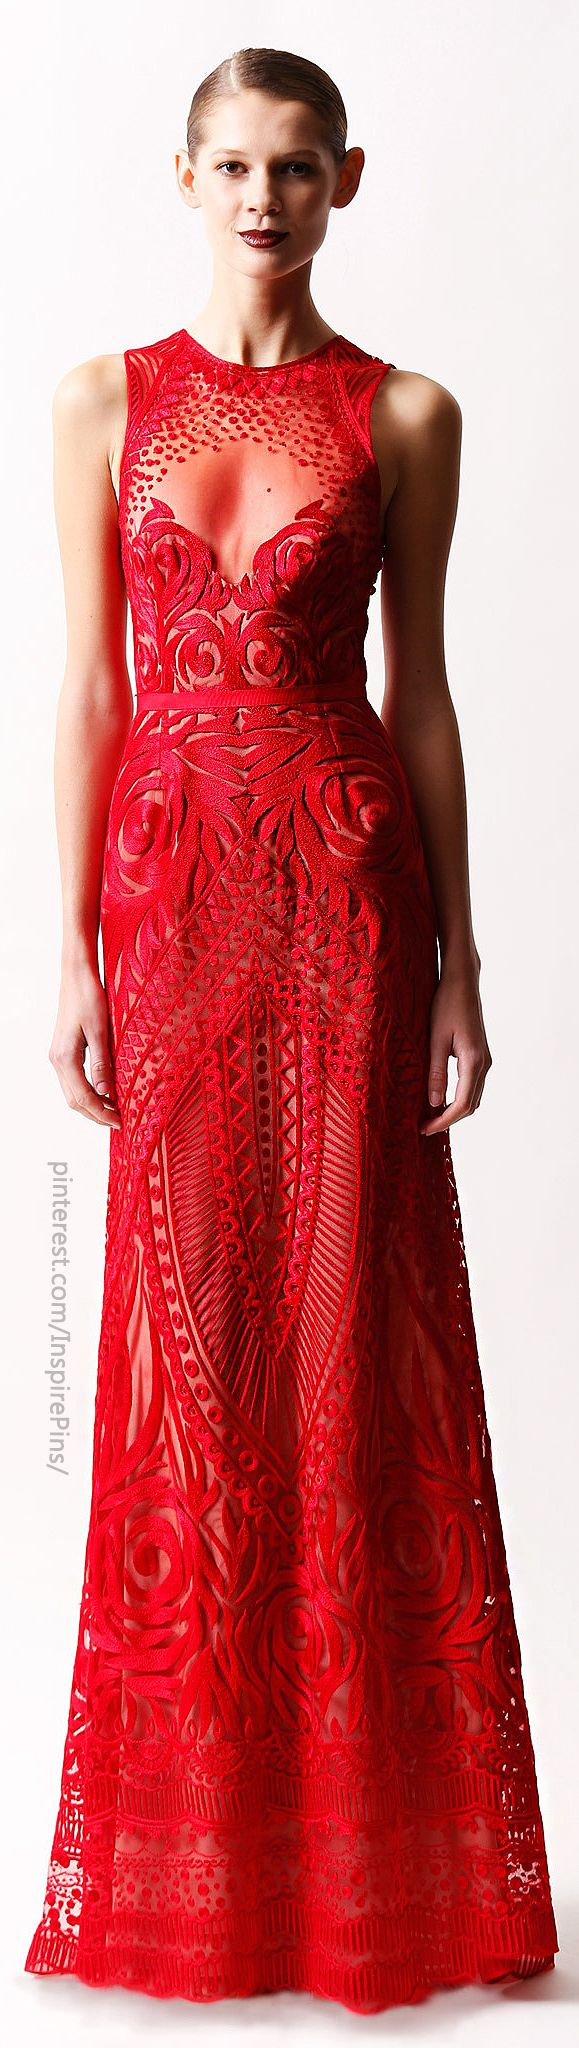 This red dress is absolutely stunning! I wish i had an occasion EVER to wear a dress like this!